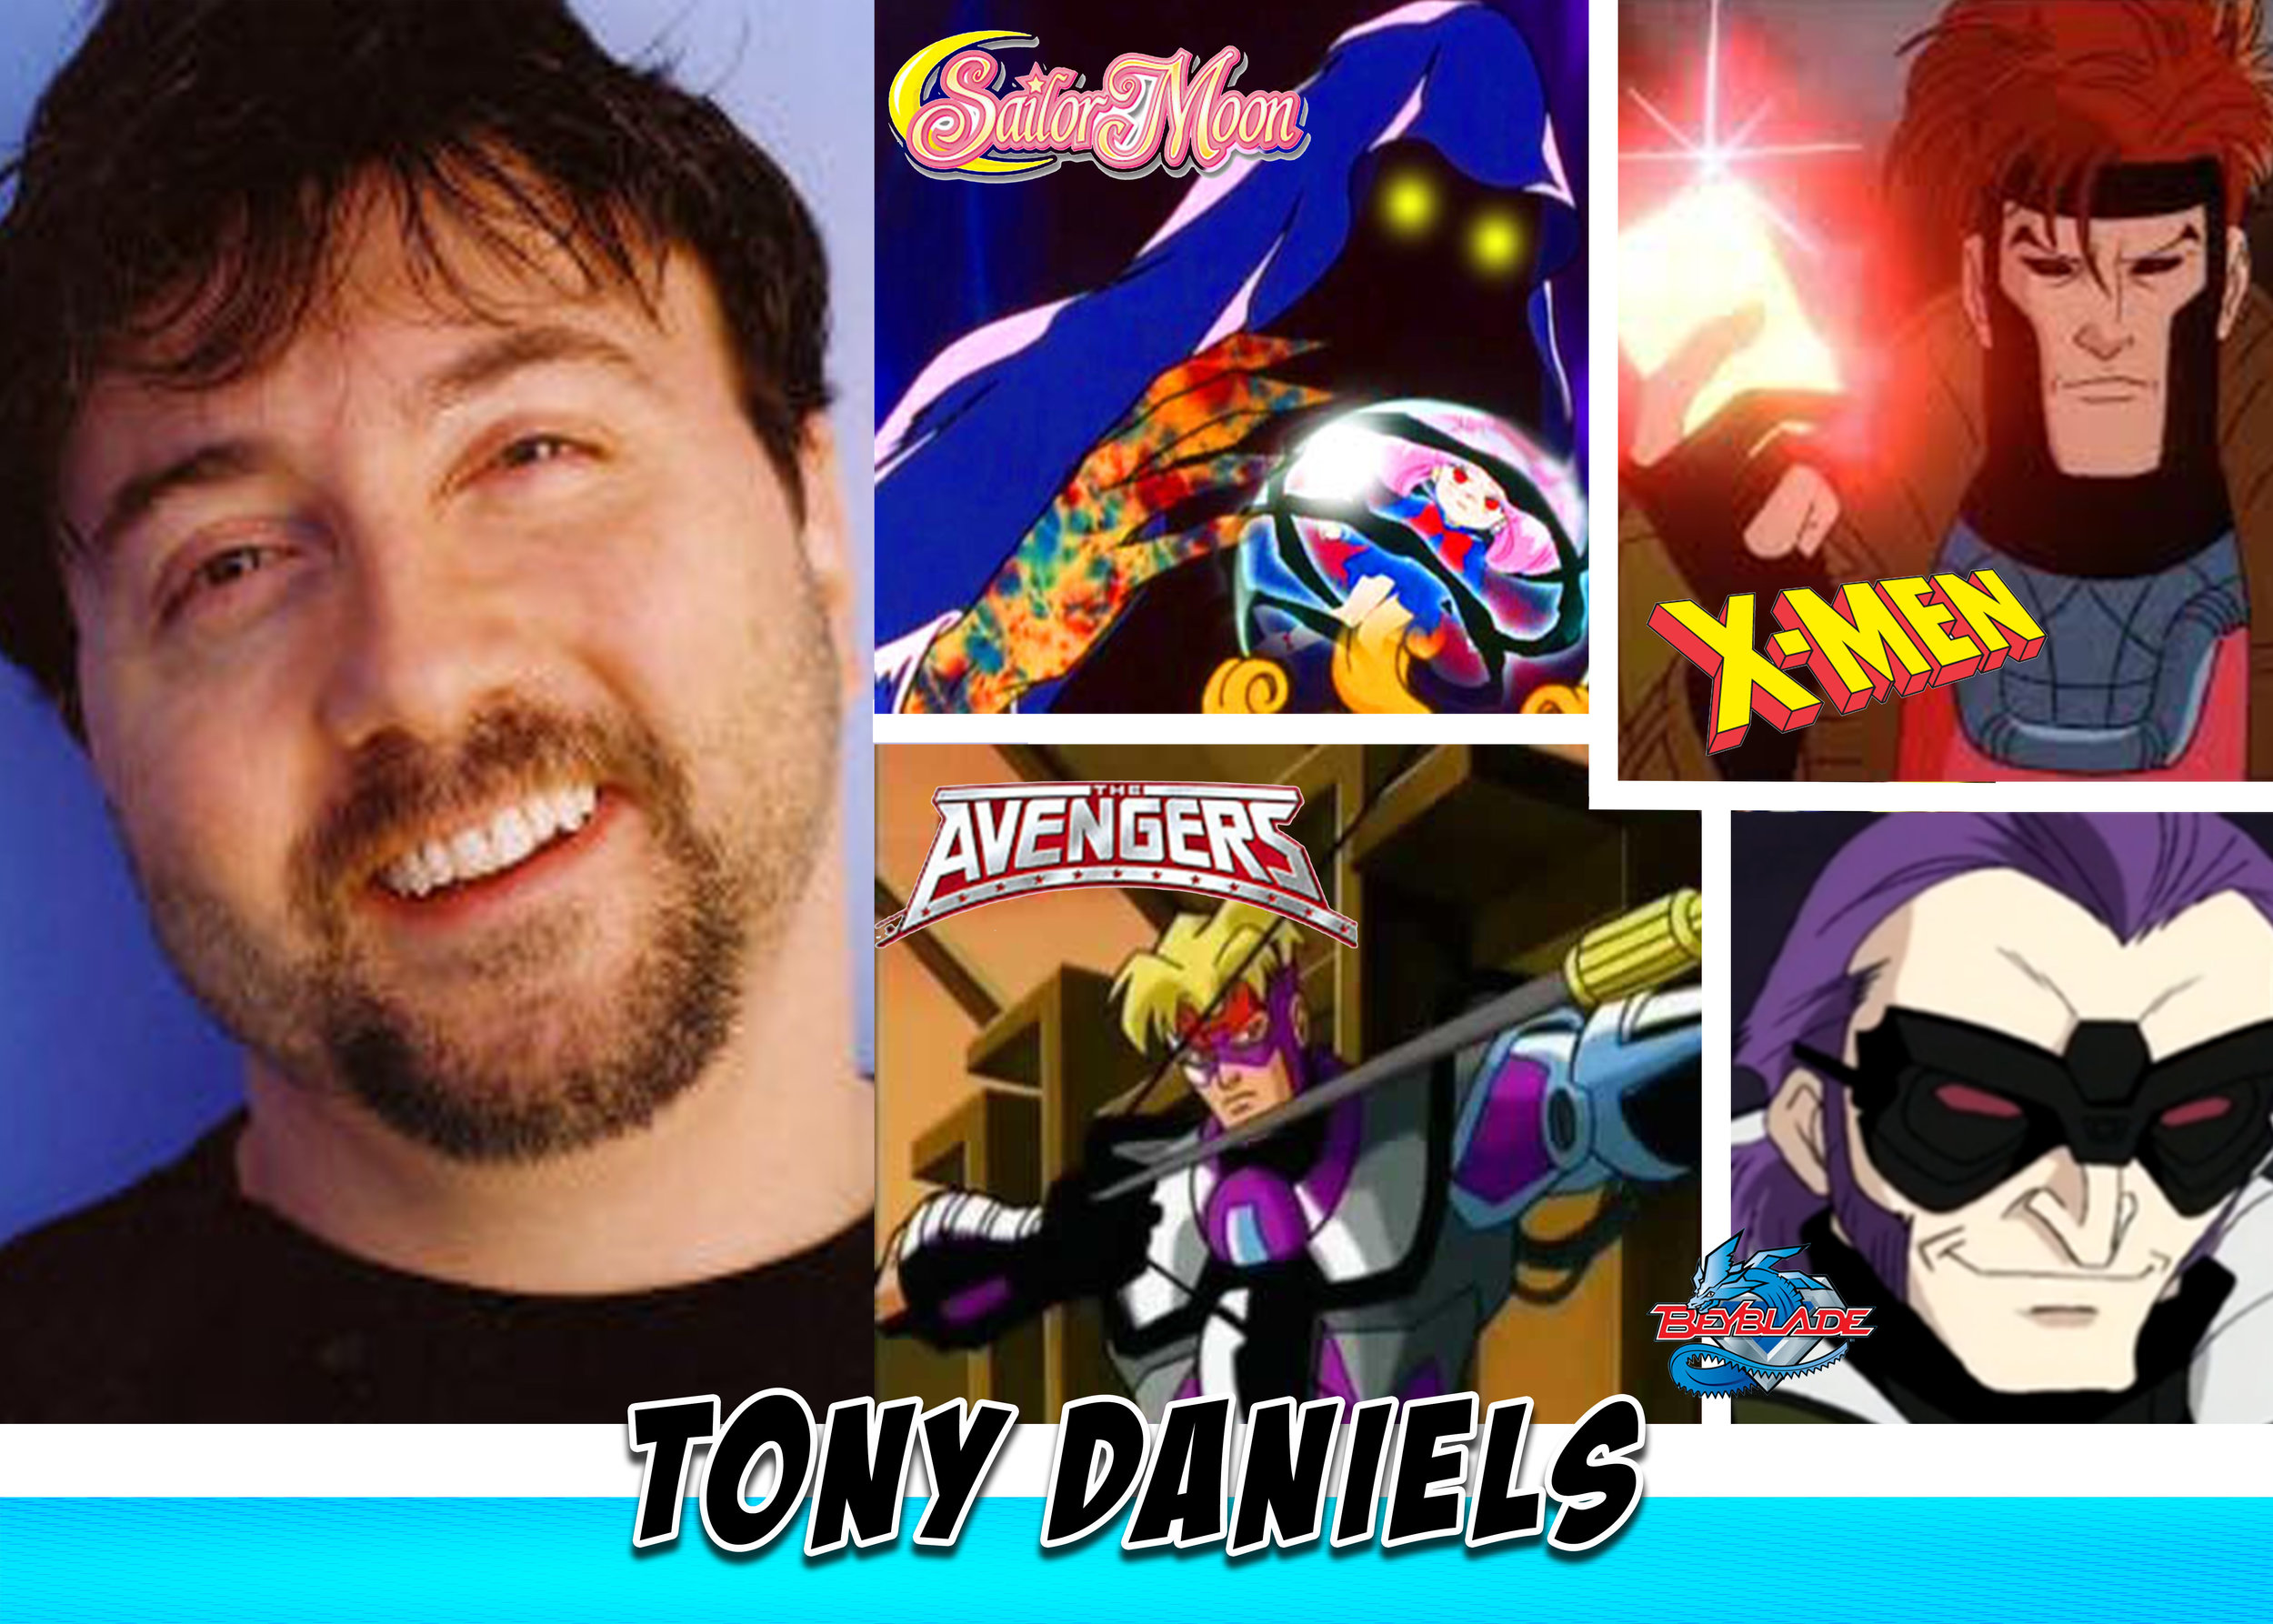 Tony Daniels - Tony has a long history of voice acting and has been the voice of Tony the tiger, Gambit from the 90's X-men cartoon, Wiseman and others in Sailor Moon, Hawkeye in Spider-man animated, and tons of other voices. If you watch cartoons you have for sure heard his voice!!!